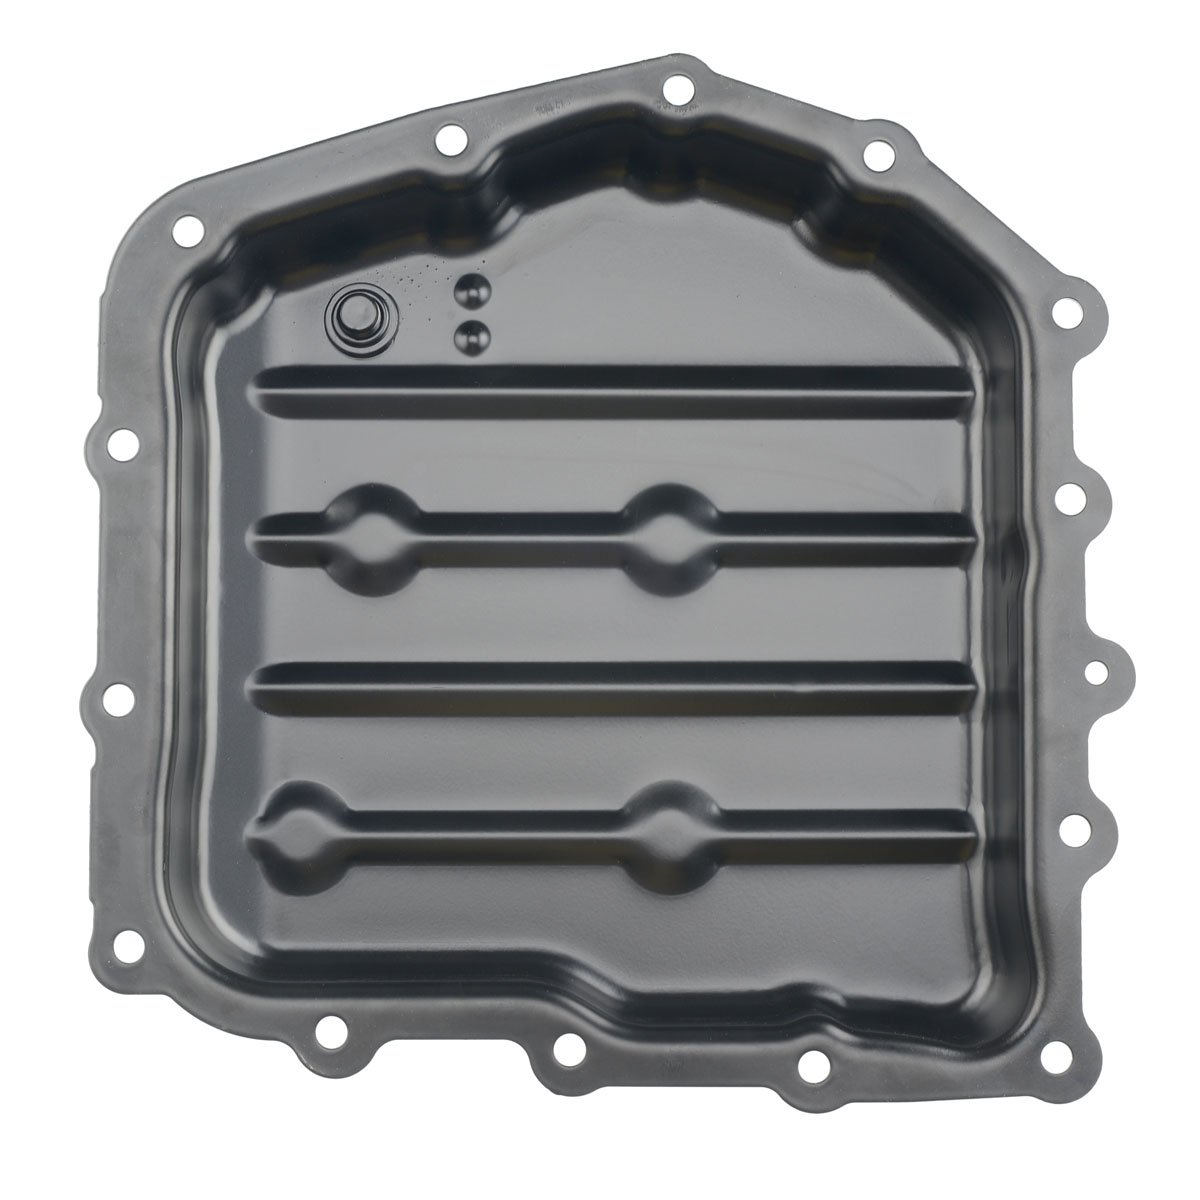 A-Premium Automatic Transmission Oil pan for Chrysler PT Cruiser Sebring  Town & Country Dodge Stratus Neon Plymouth Voyager 40TE 41TE